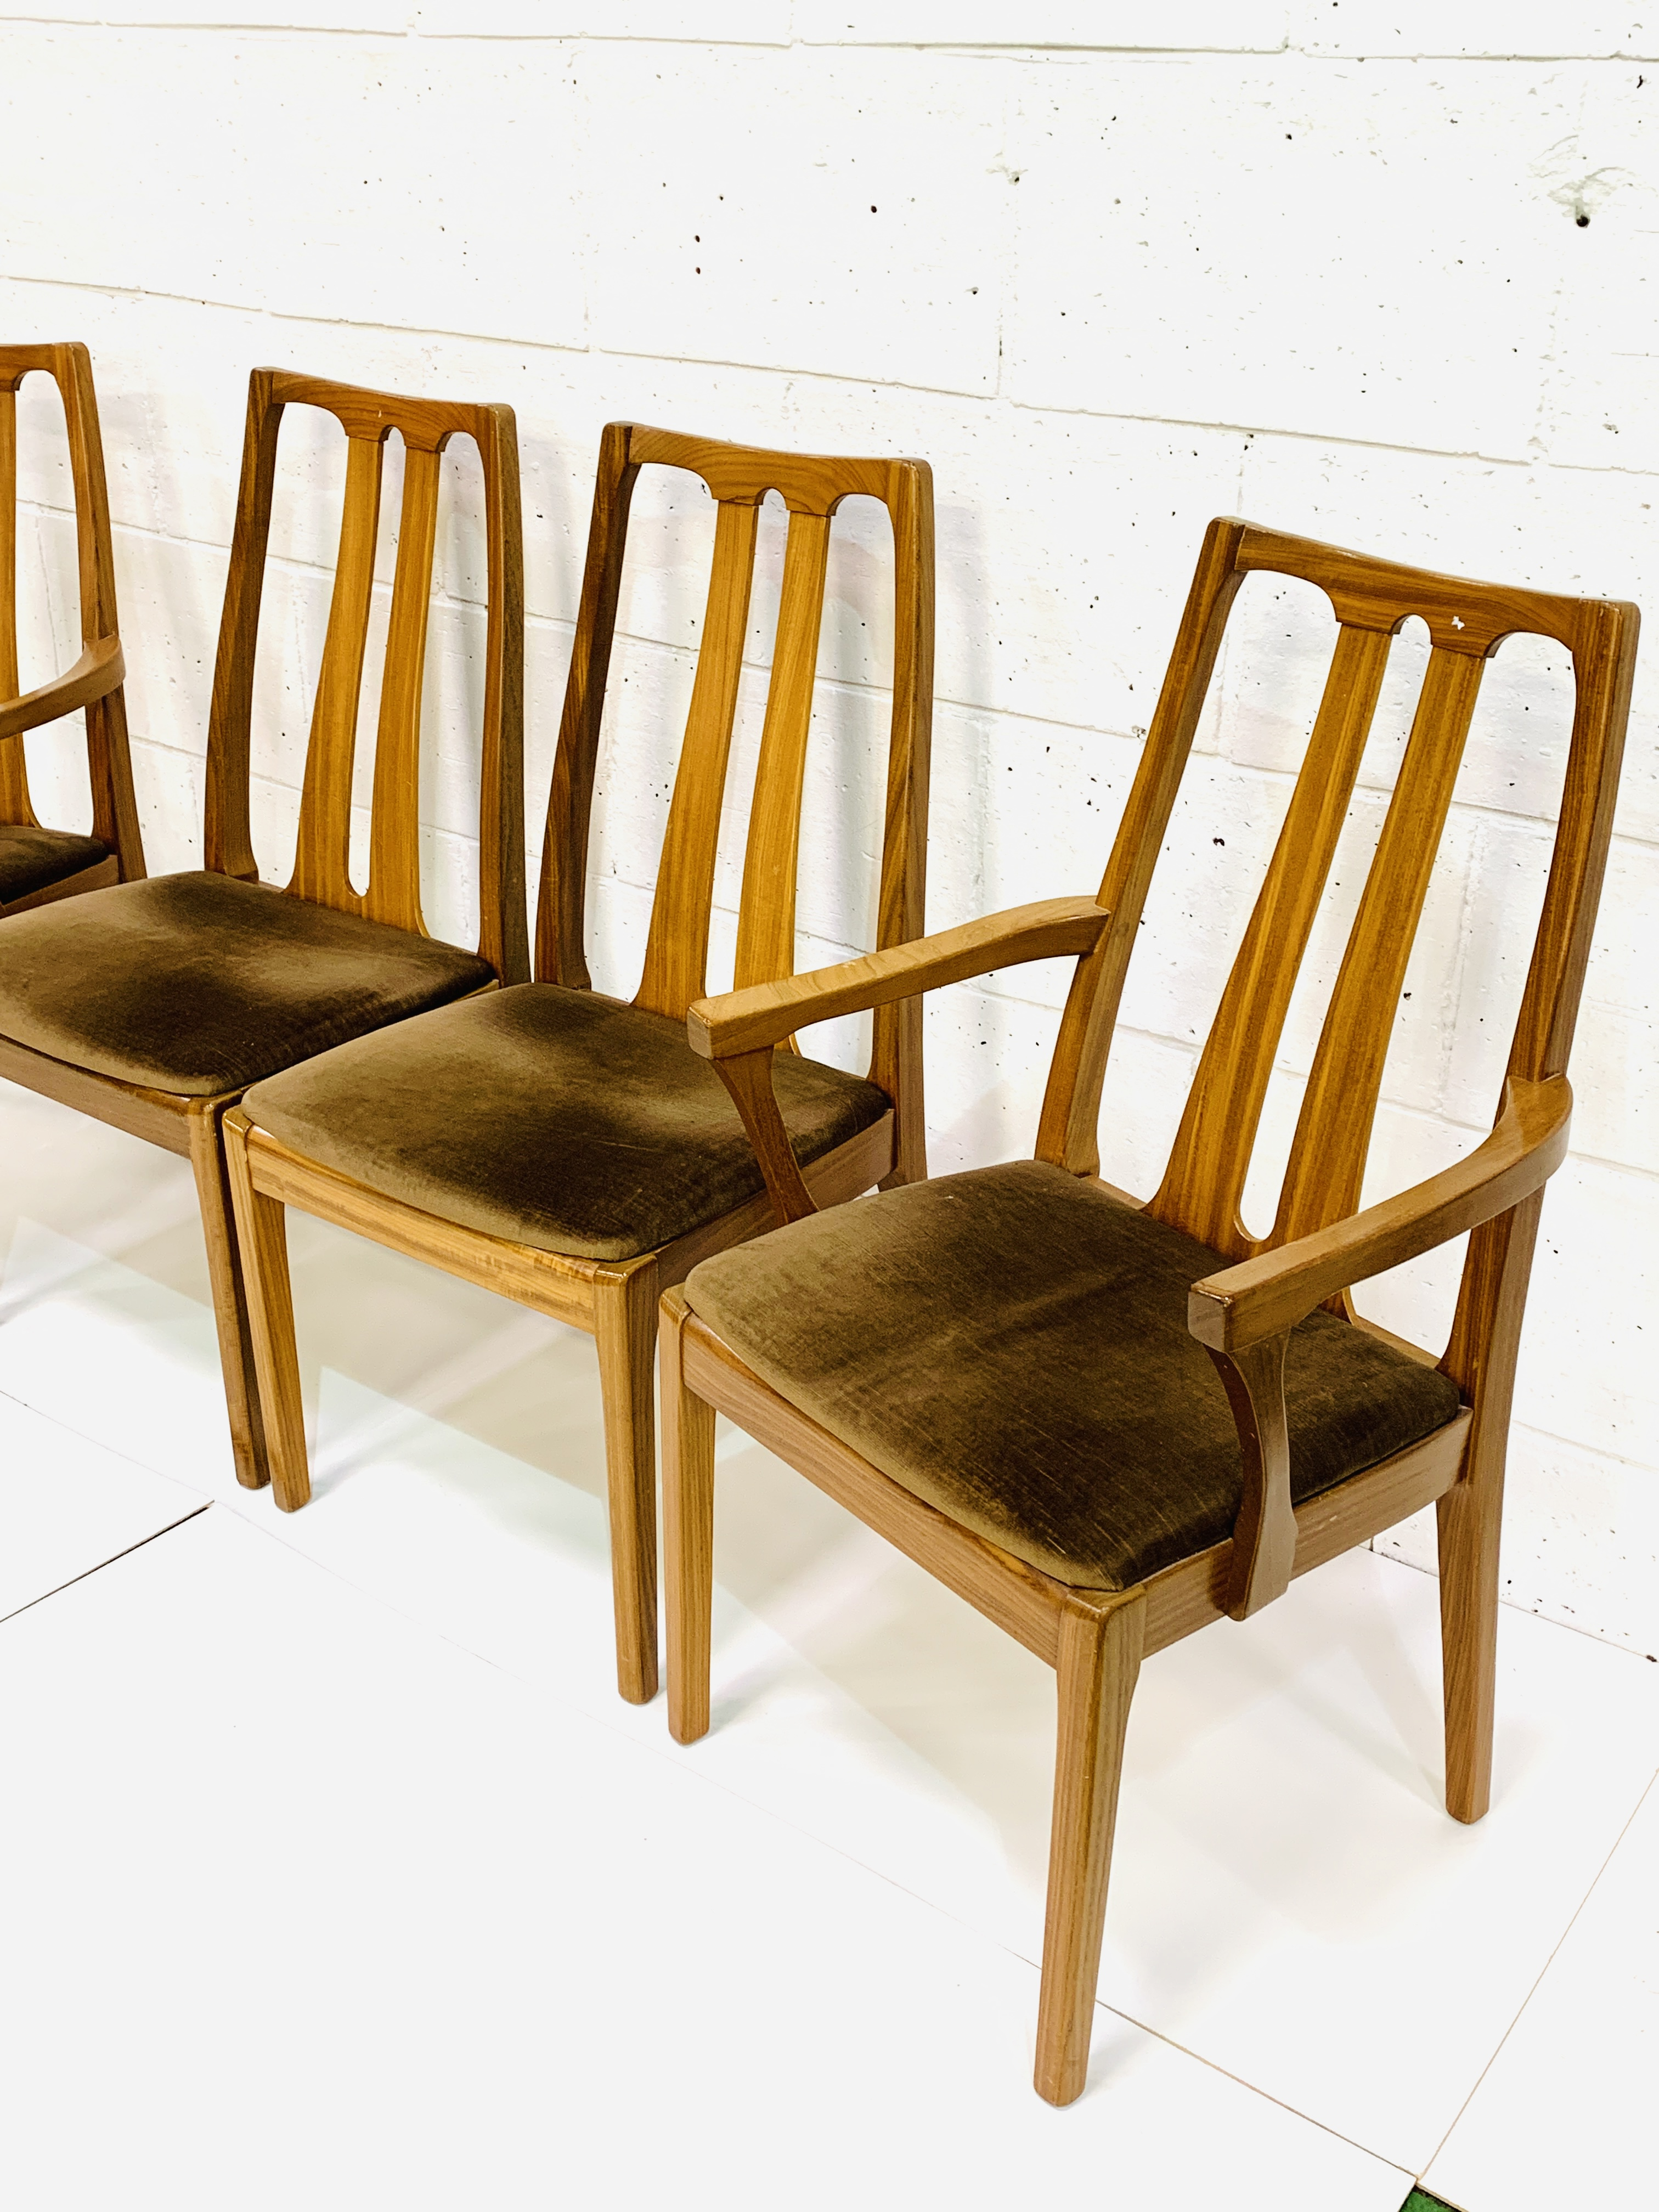 Group of four Nathan Furniture chairs - Image 2 of 6